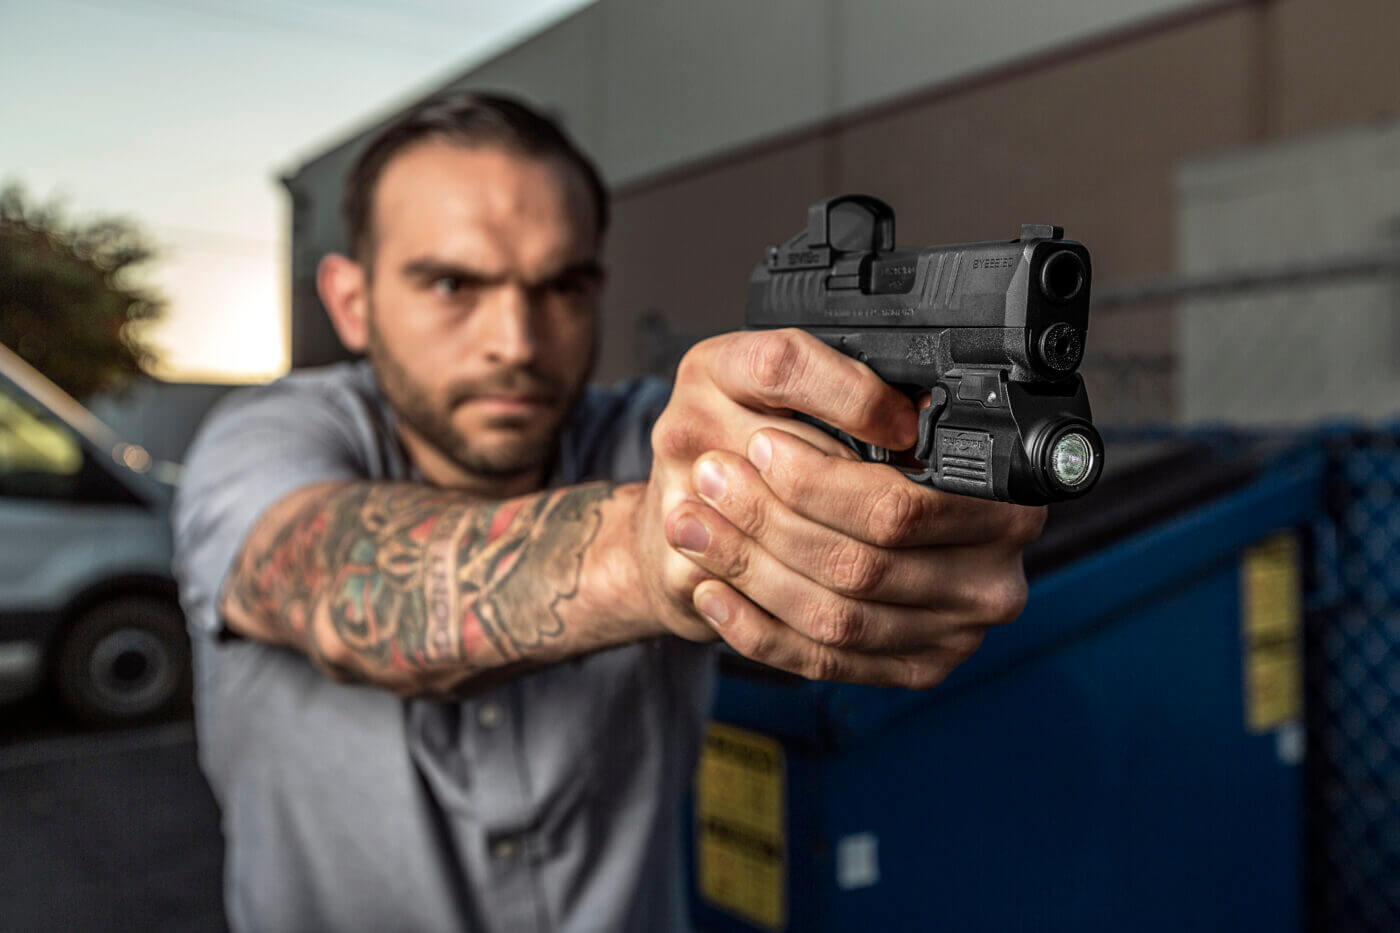 Reviewing the XSC WeaponLight from SureFire